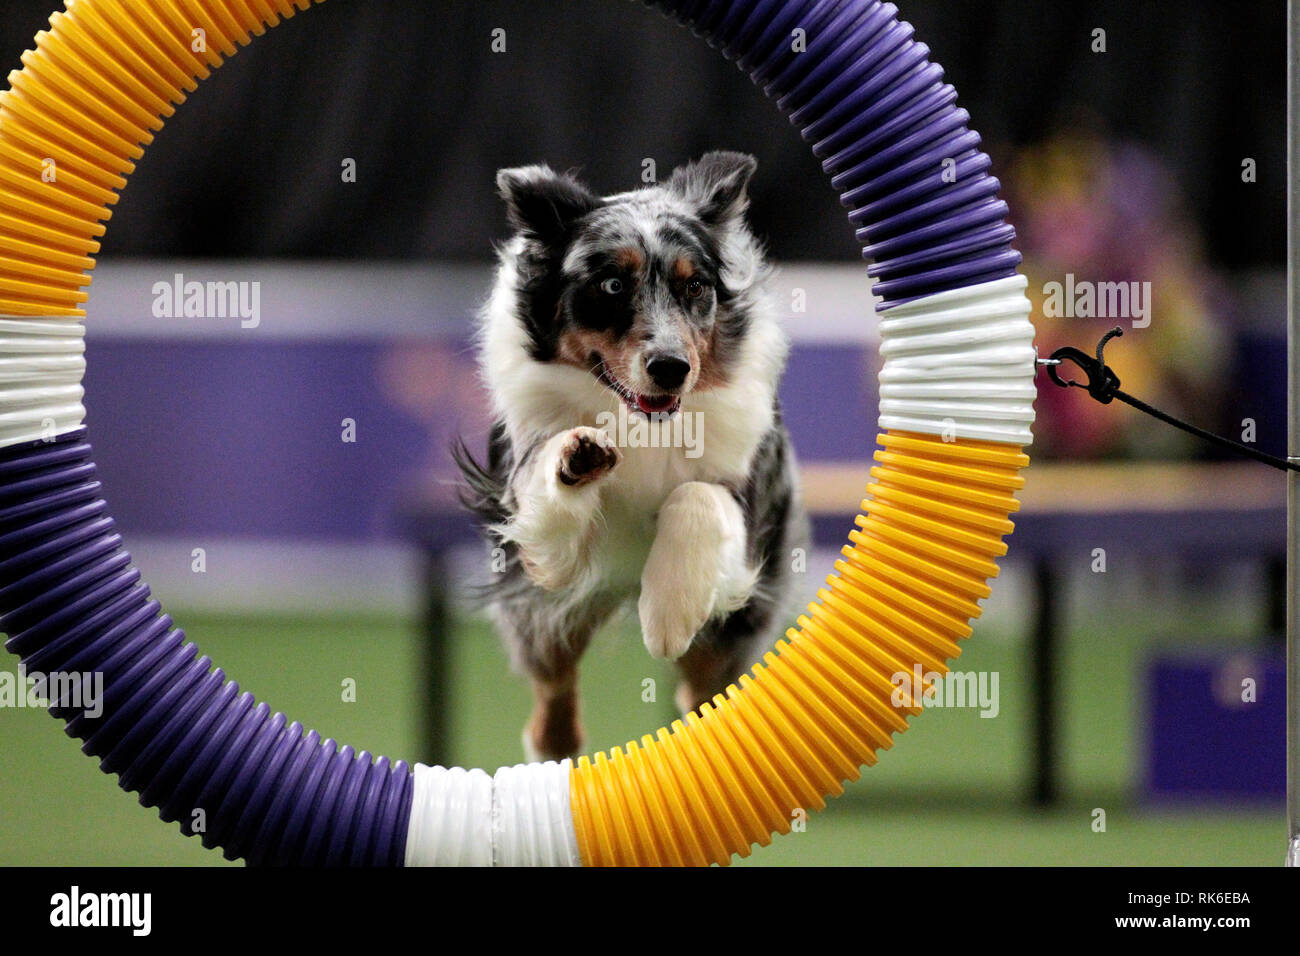 Westminster Dog Show - 9 February 2019, New York City:  Silk, an Australian Shepard, competing in the preliminaries of the Westminster Kennel Club's Master's Agility Championship. Stock Photo